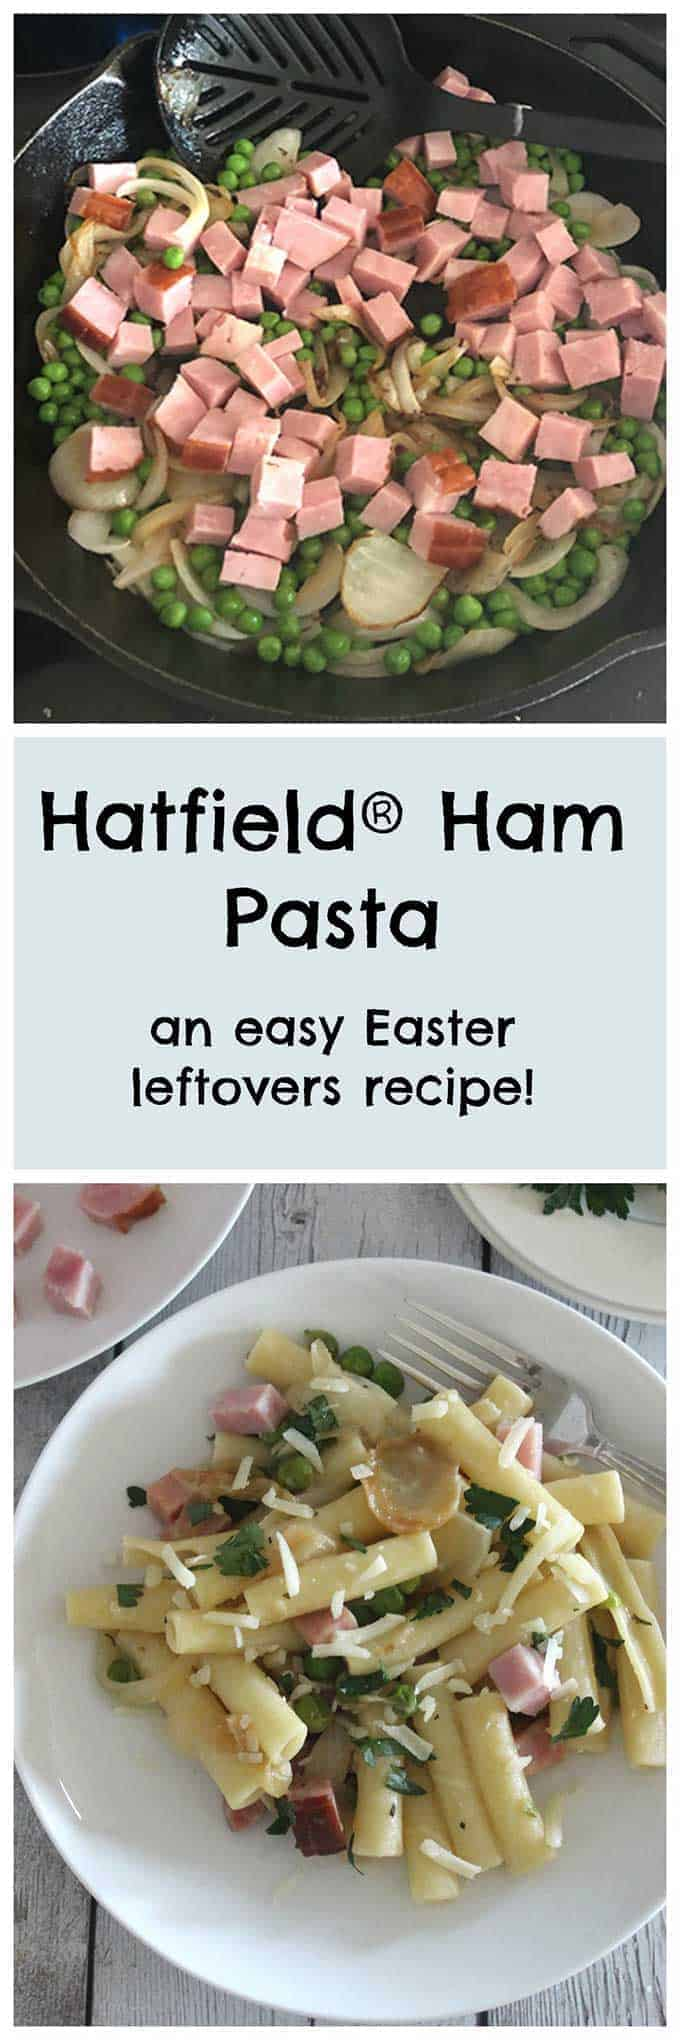 an image of ham, peas and onions in a skillet on top, and a picture of ham pasta below it.